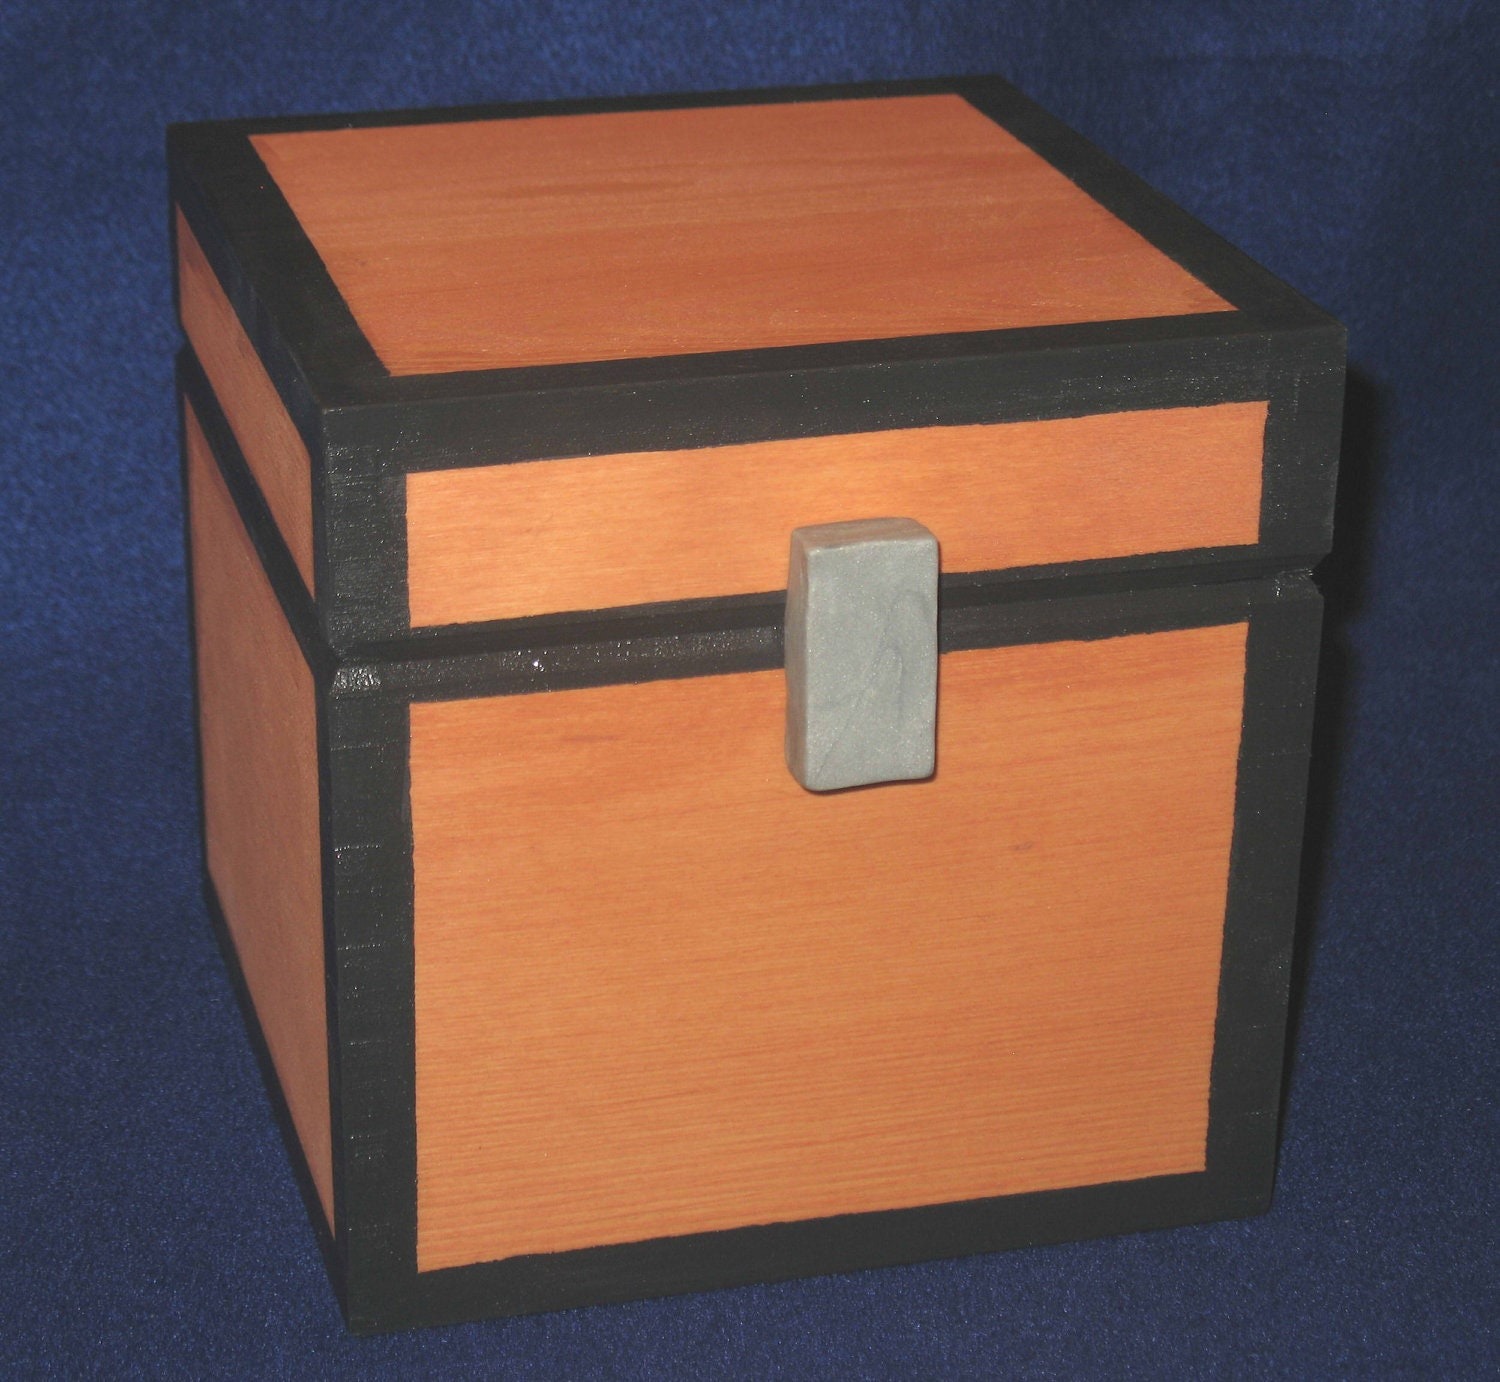 Minecraft-Inspired Chest Working Wooden Prop and Storage